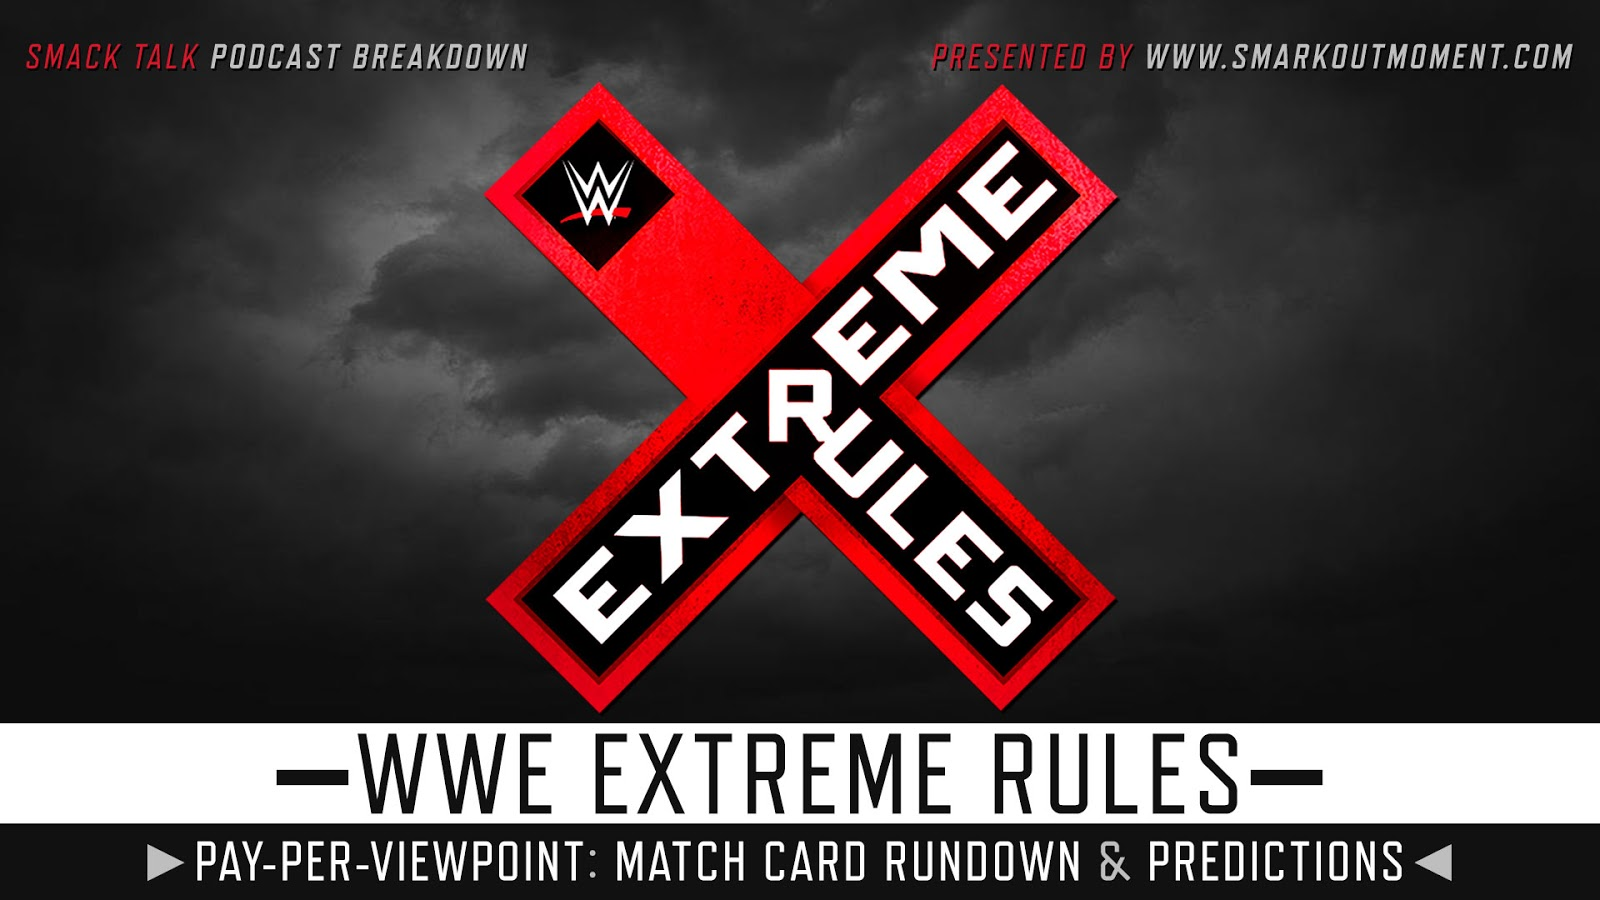 WWE Extreme Rules 2018 spoilers podcast